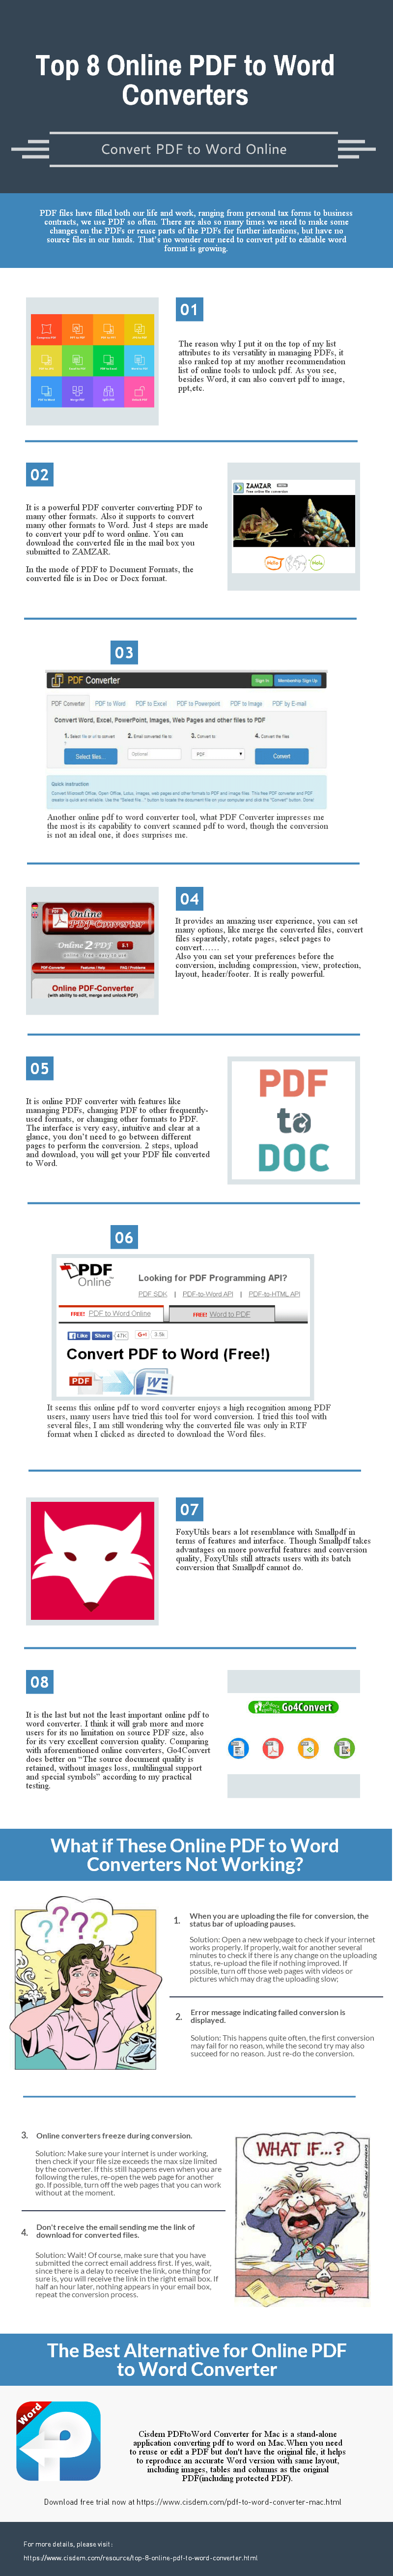 top-8-online-pdf-to-word-converters-infographic-plaza